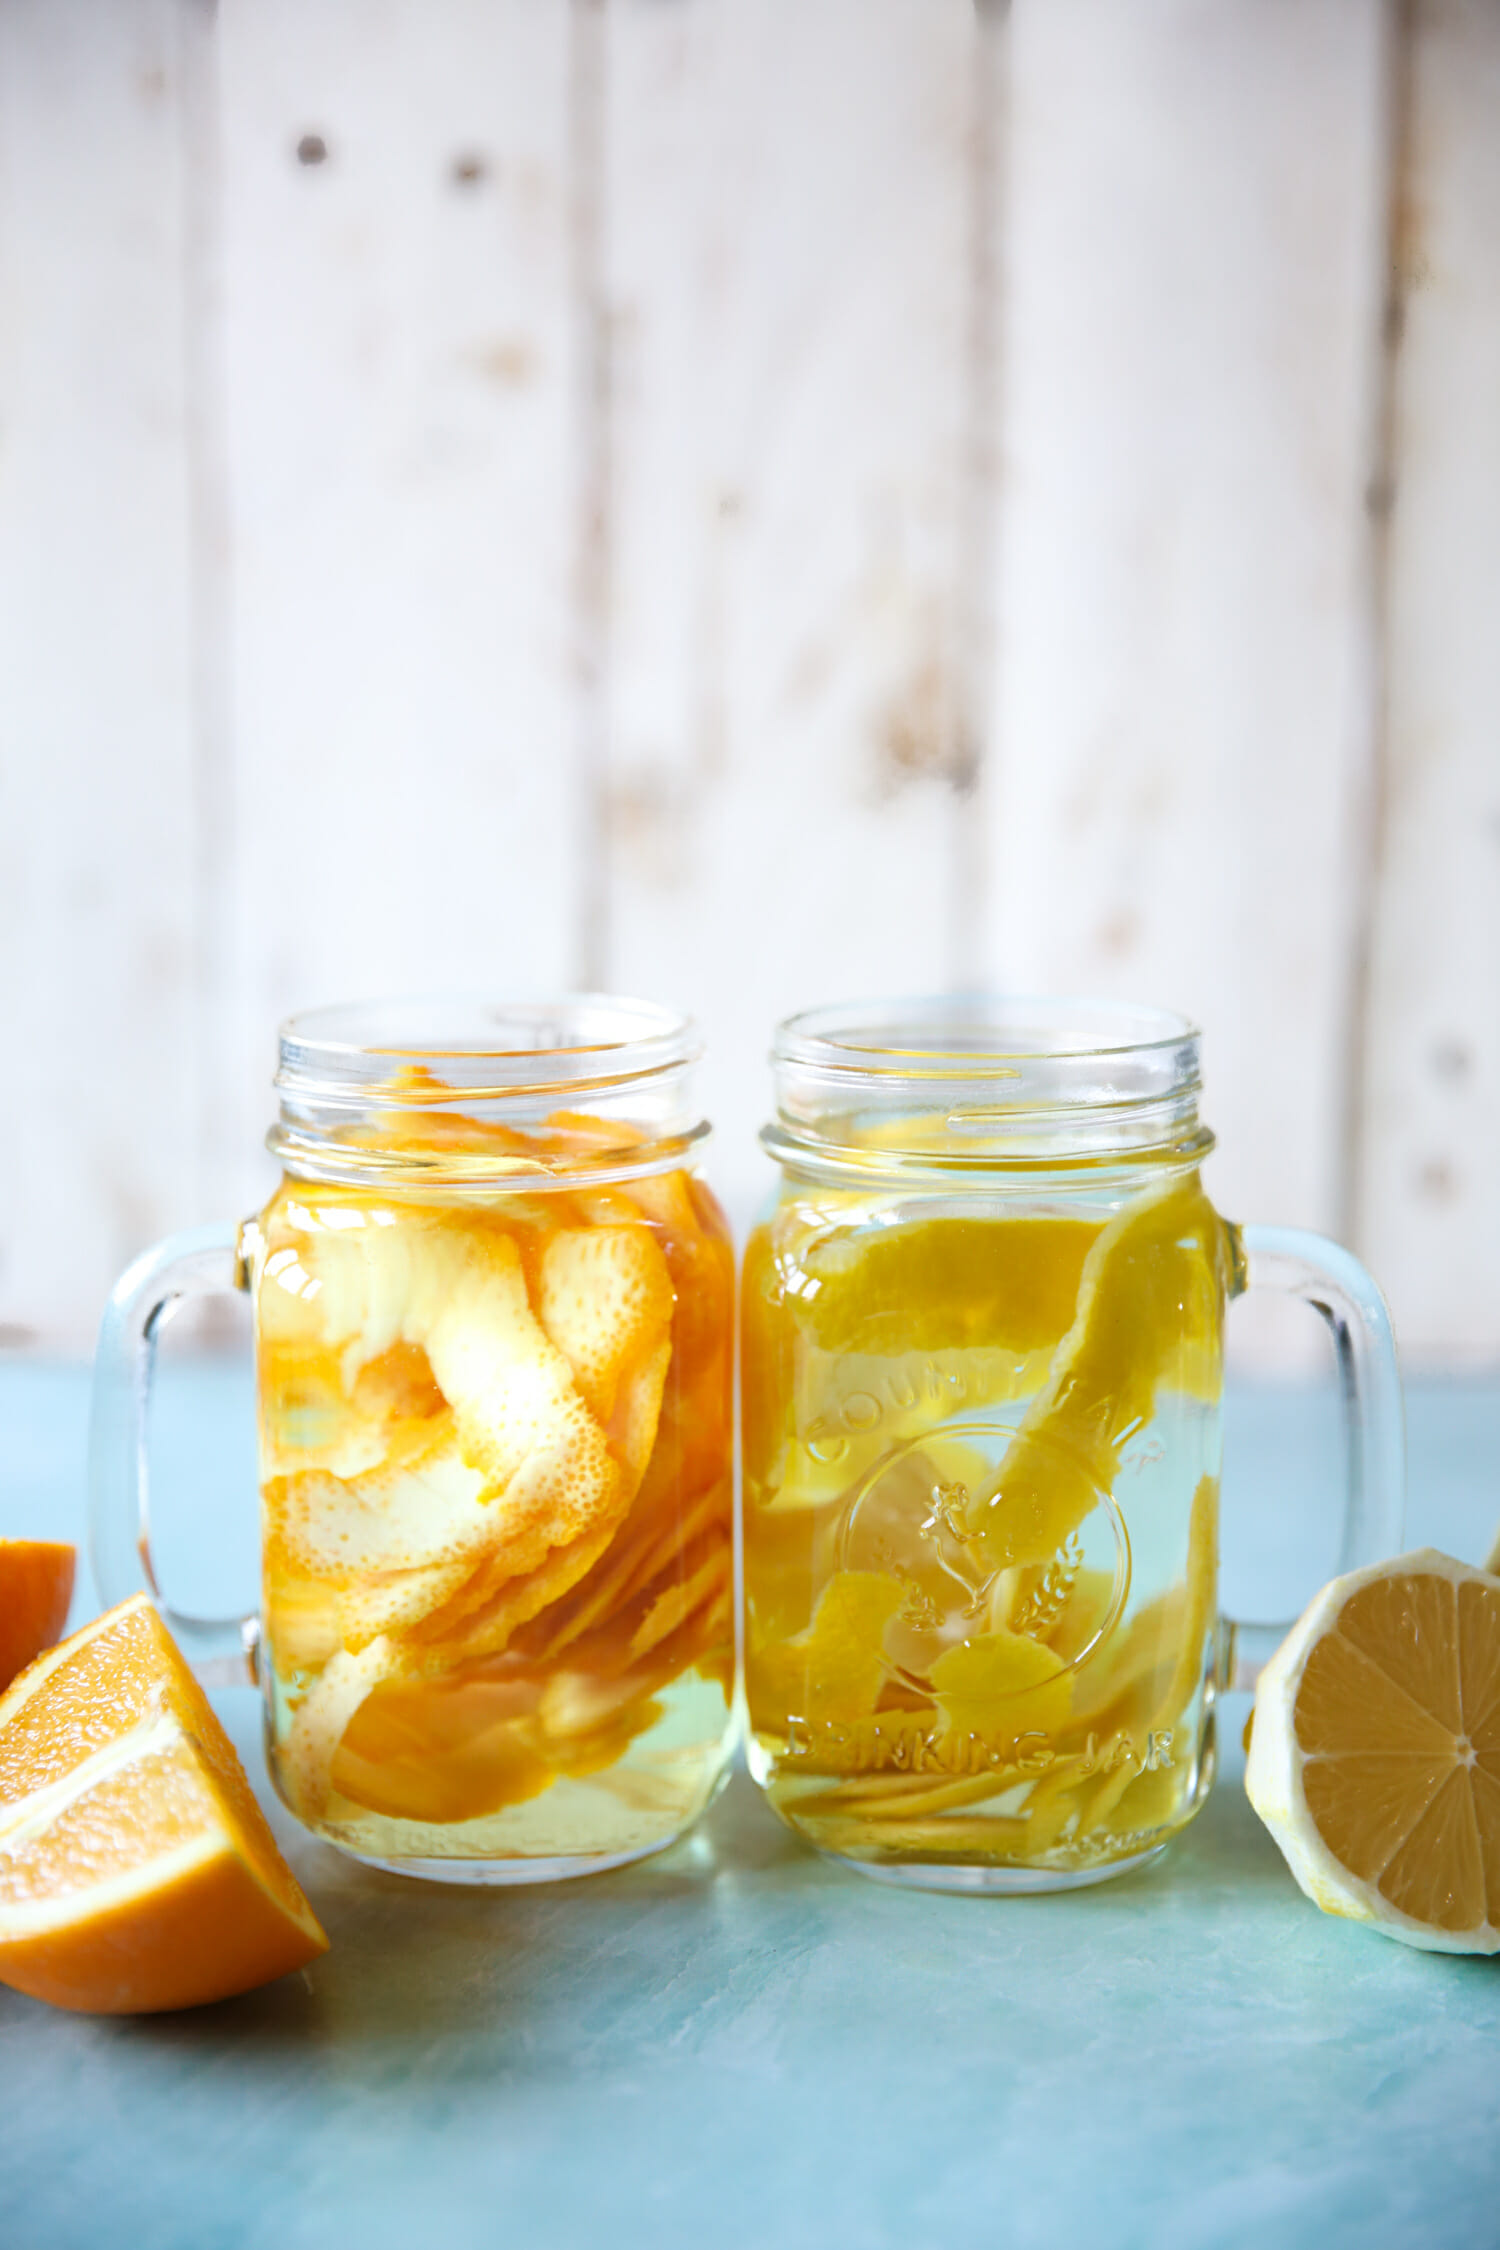 homemade citrus extracts from our best bites